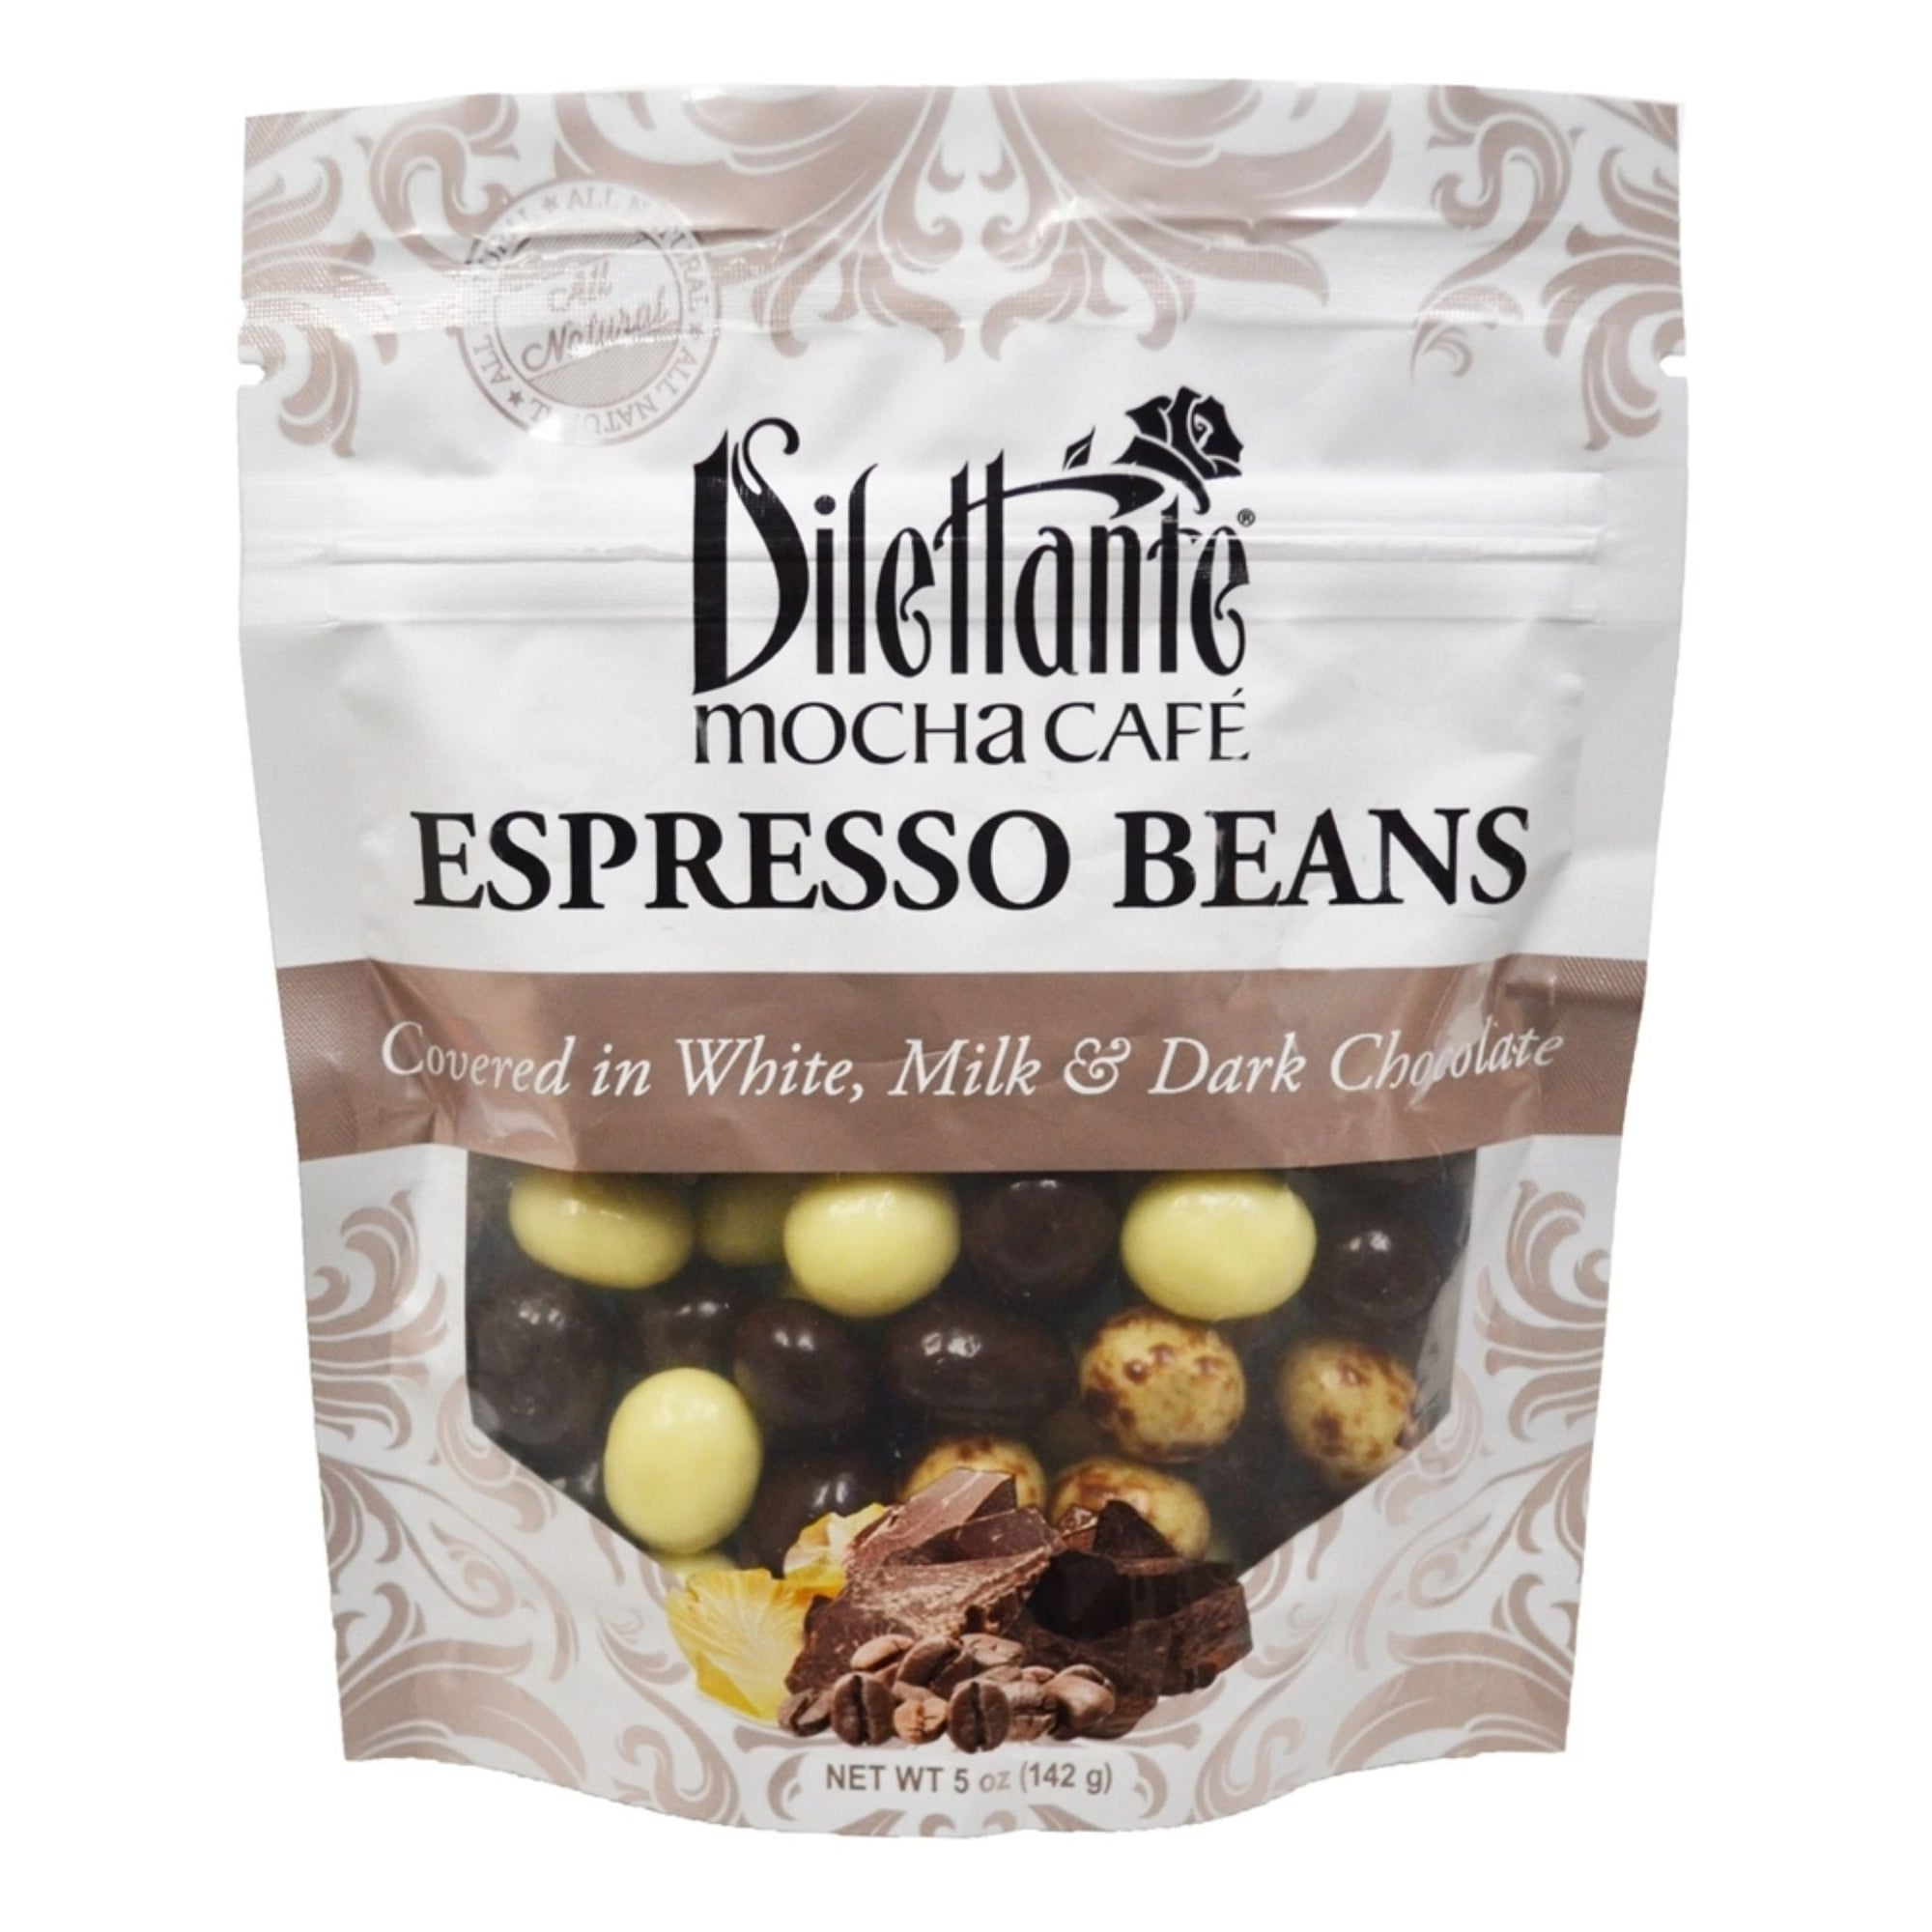 Dilettante Chocolate Mocha Cafe Espresso Beans Covered in White, Milk, and Dark Chocolate